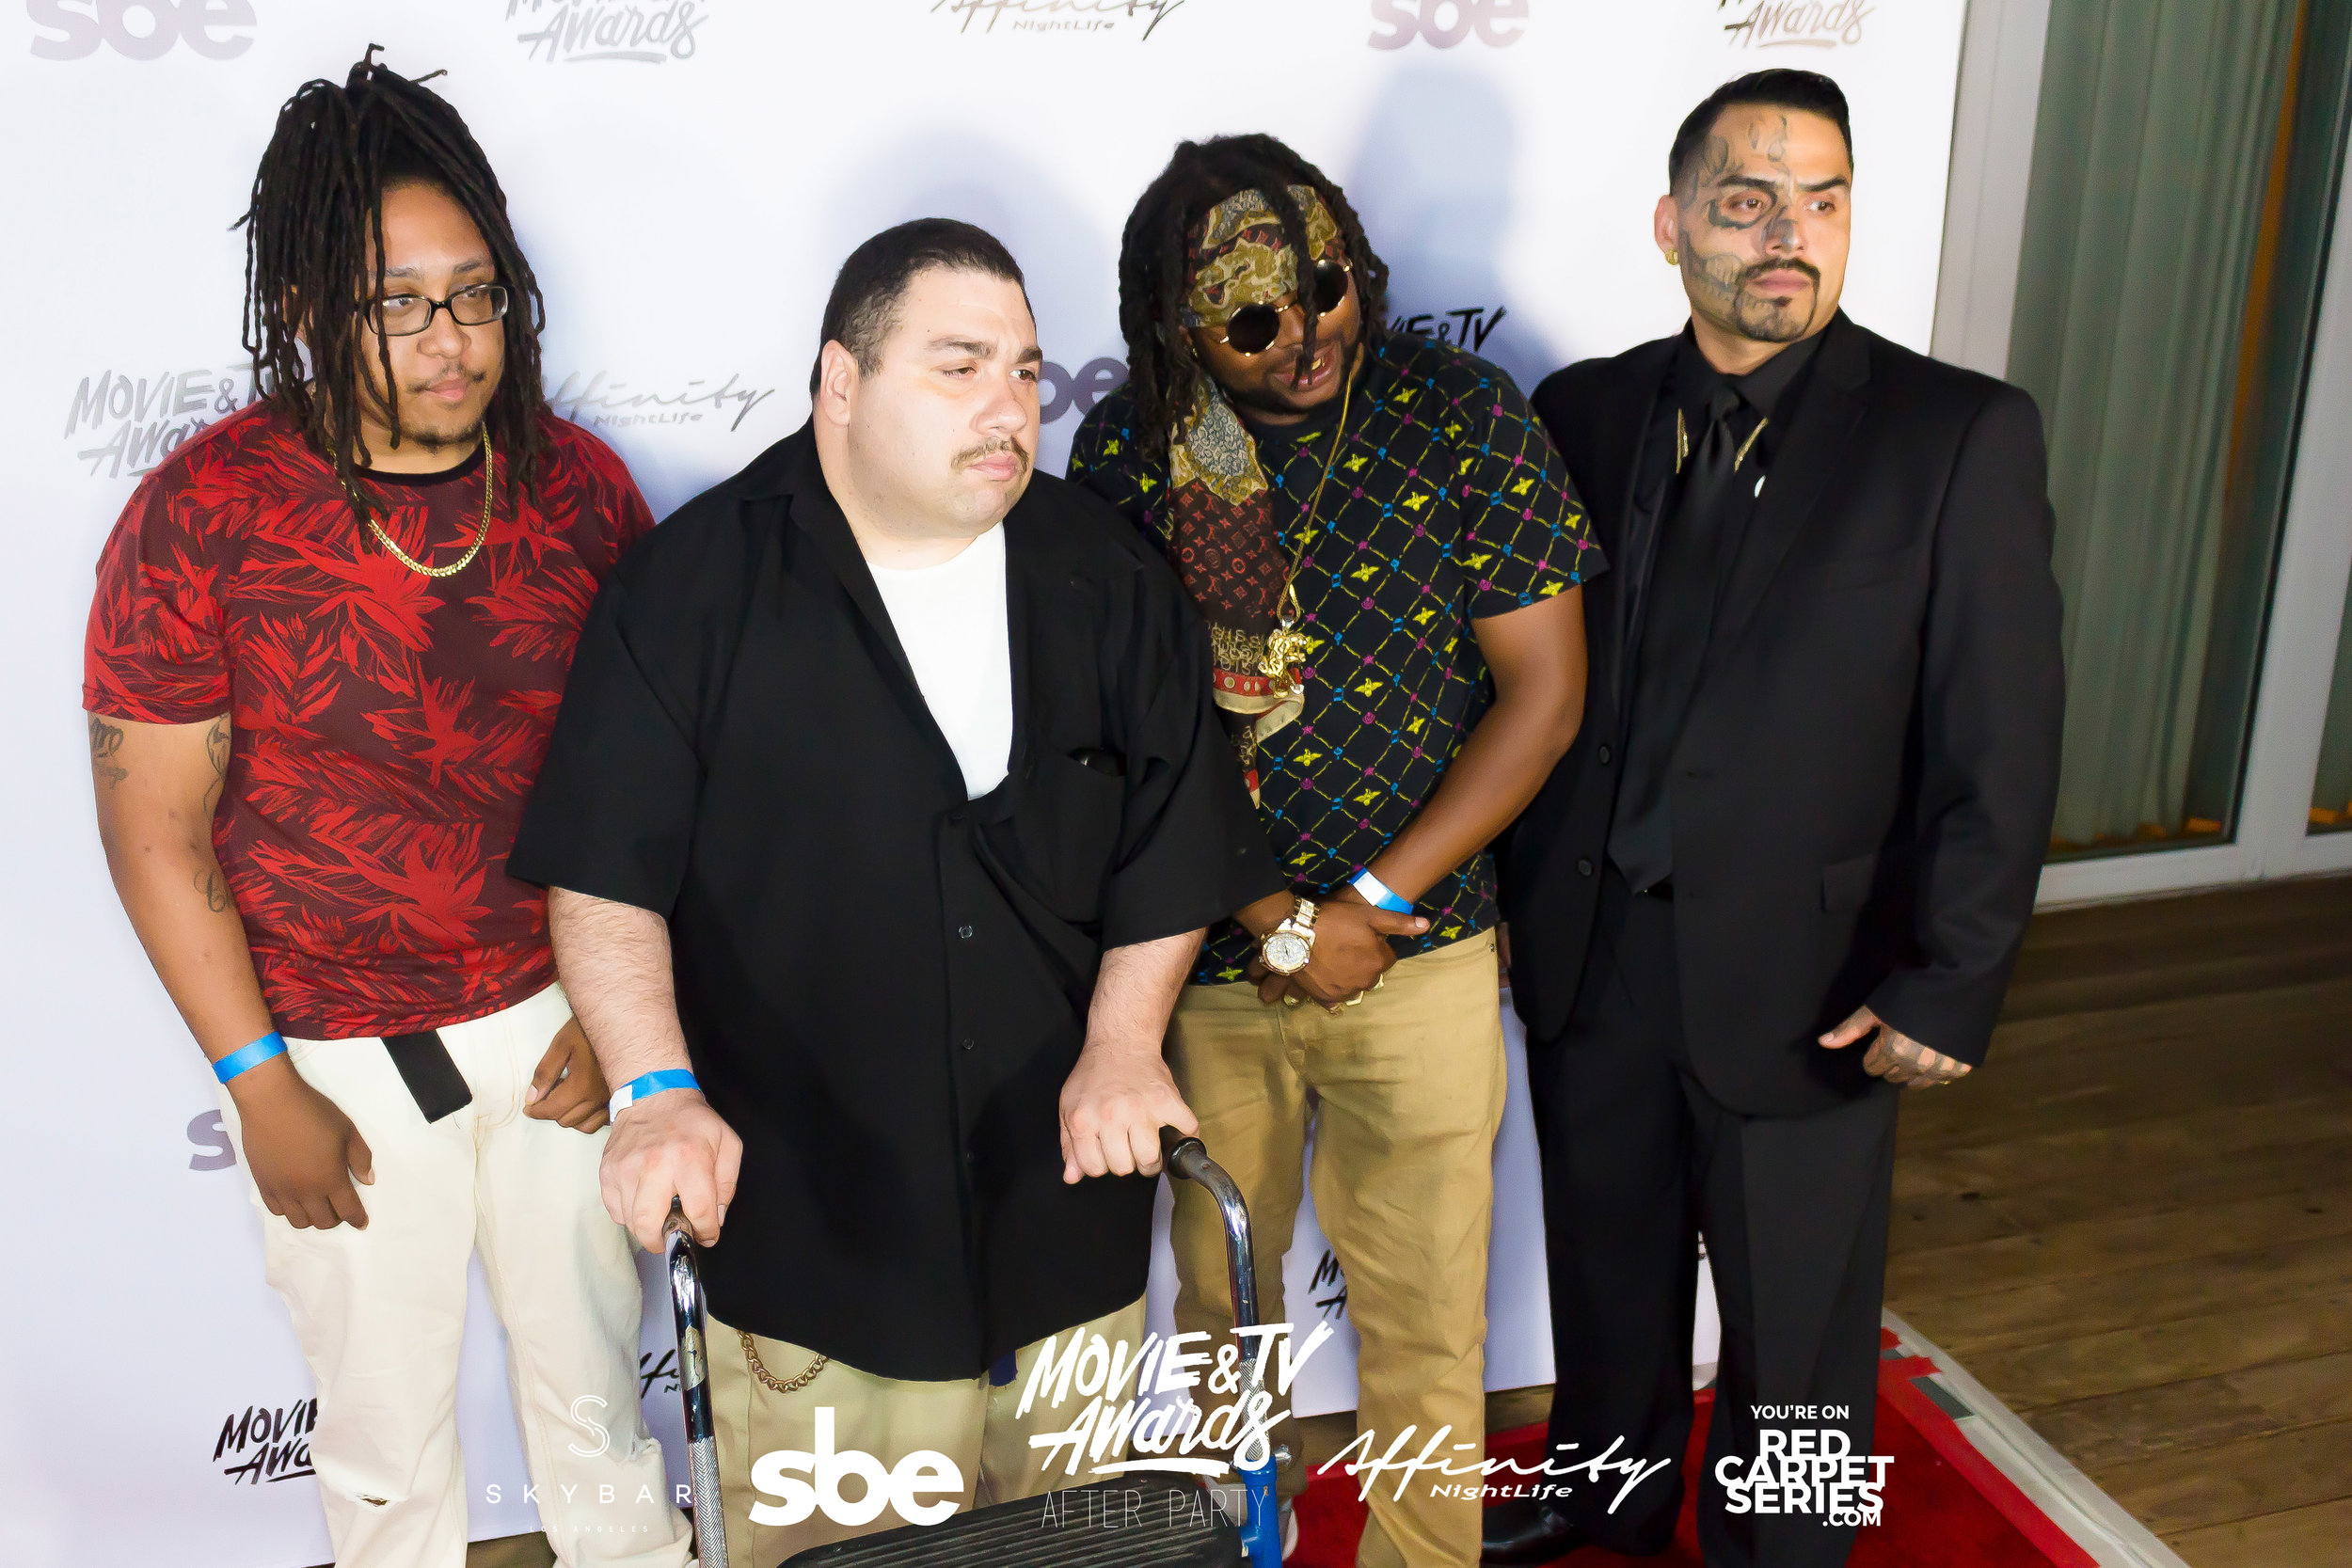 Affinity Nightlife MTV Movie & TV Awards After Party - Skybar at Mondrian - 06-15-19 - Vol. 2_117.jpg